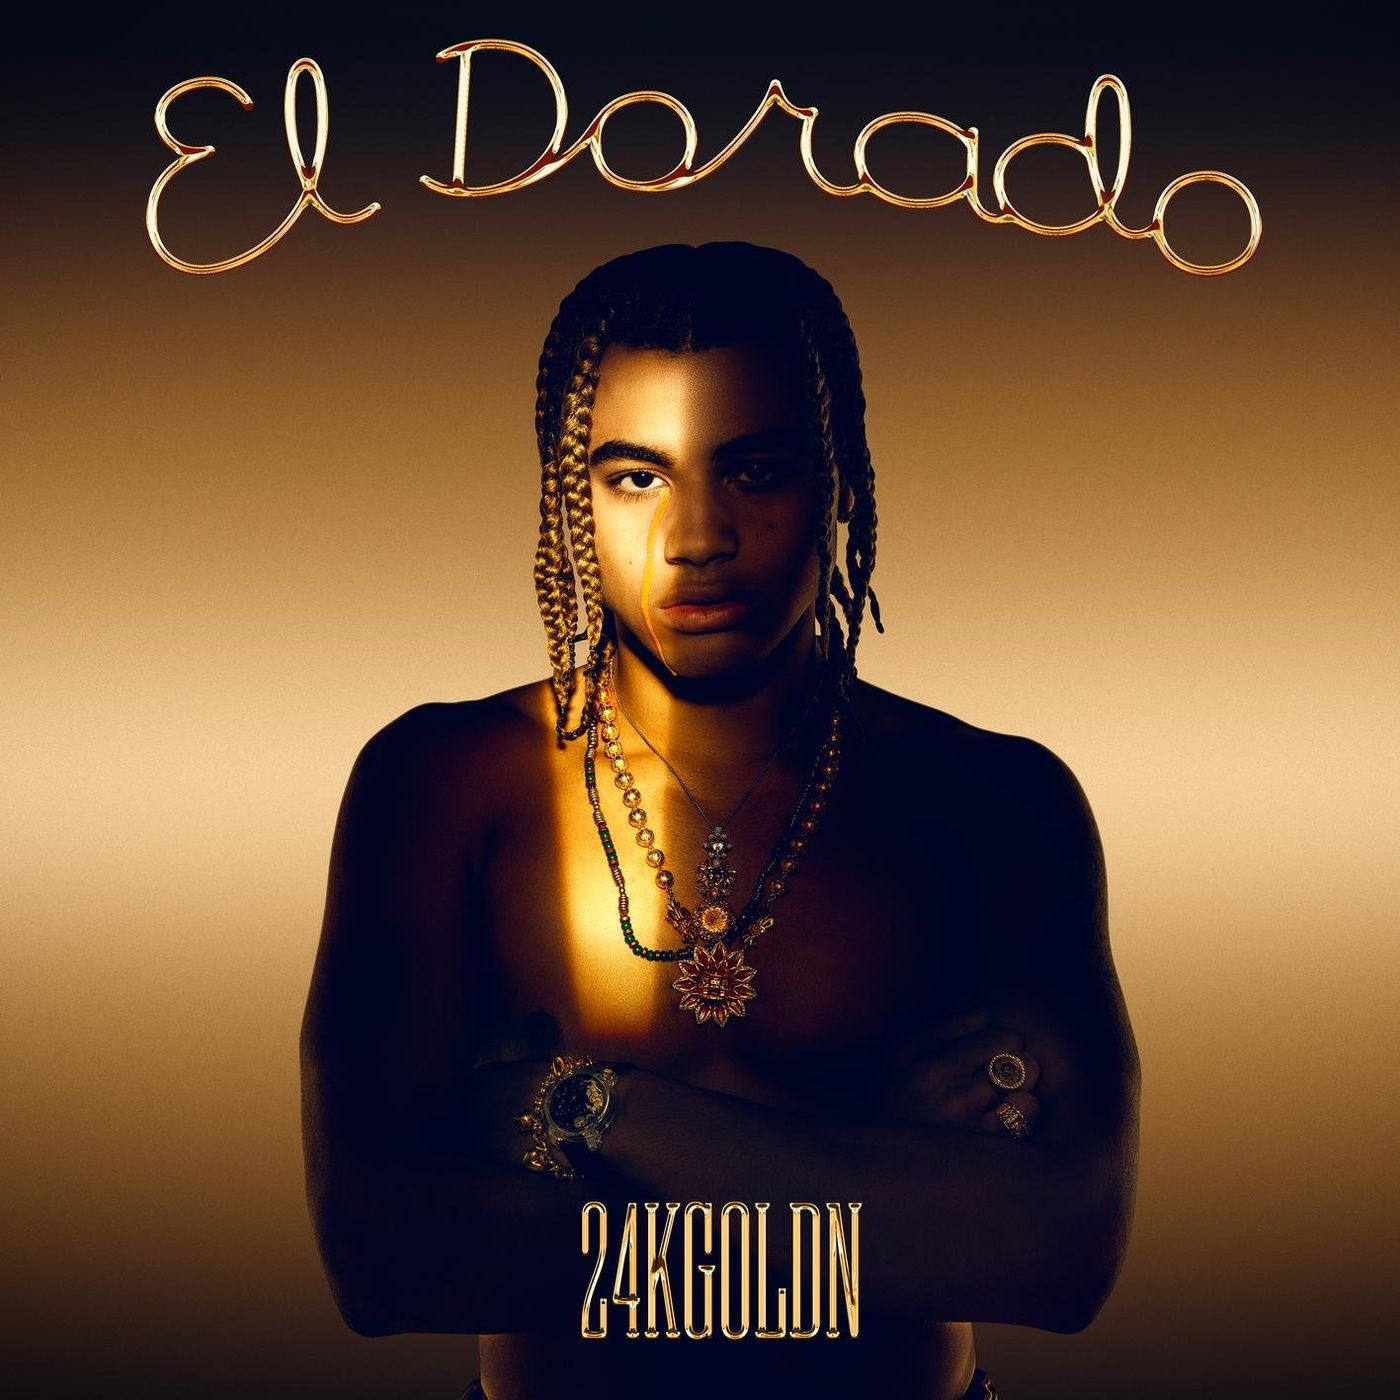 Cover 24kgoldn - El Dorado album